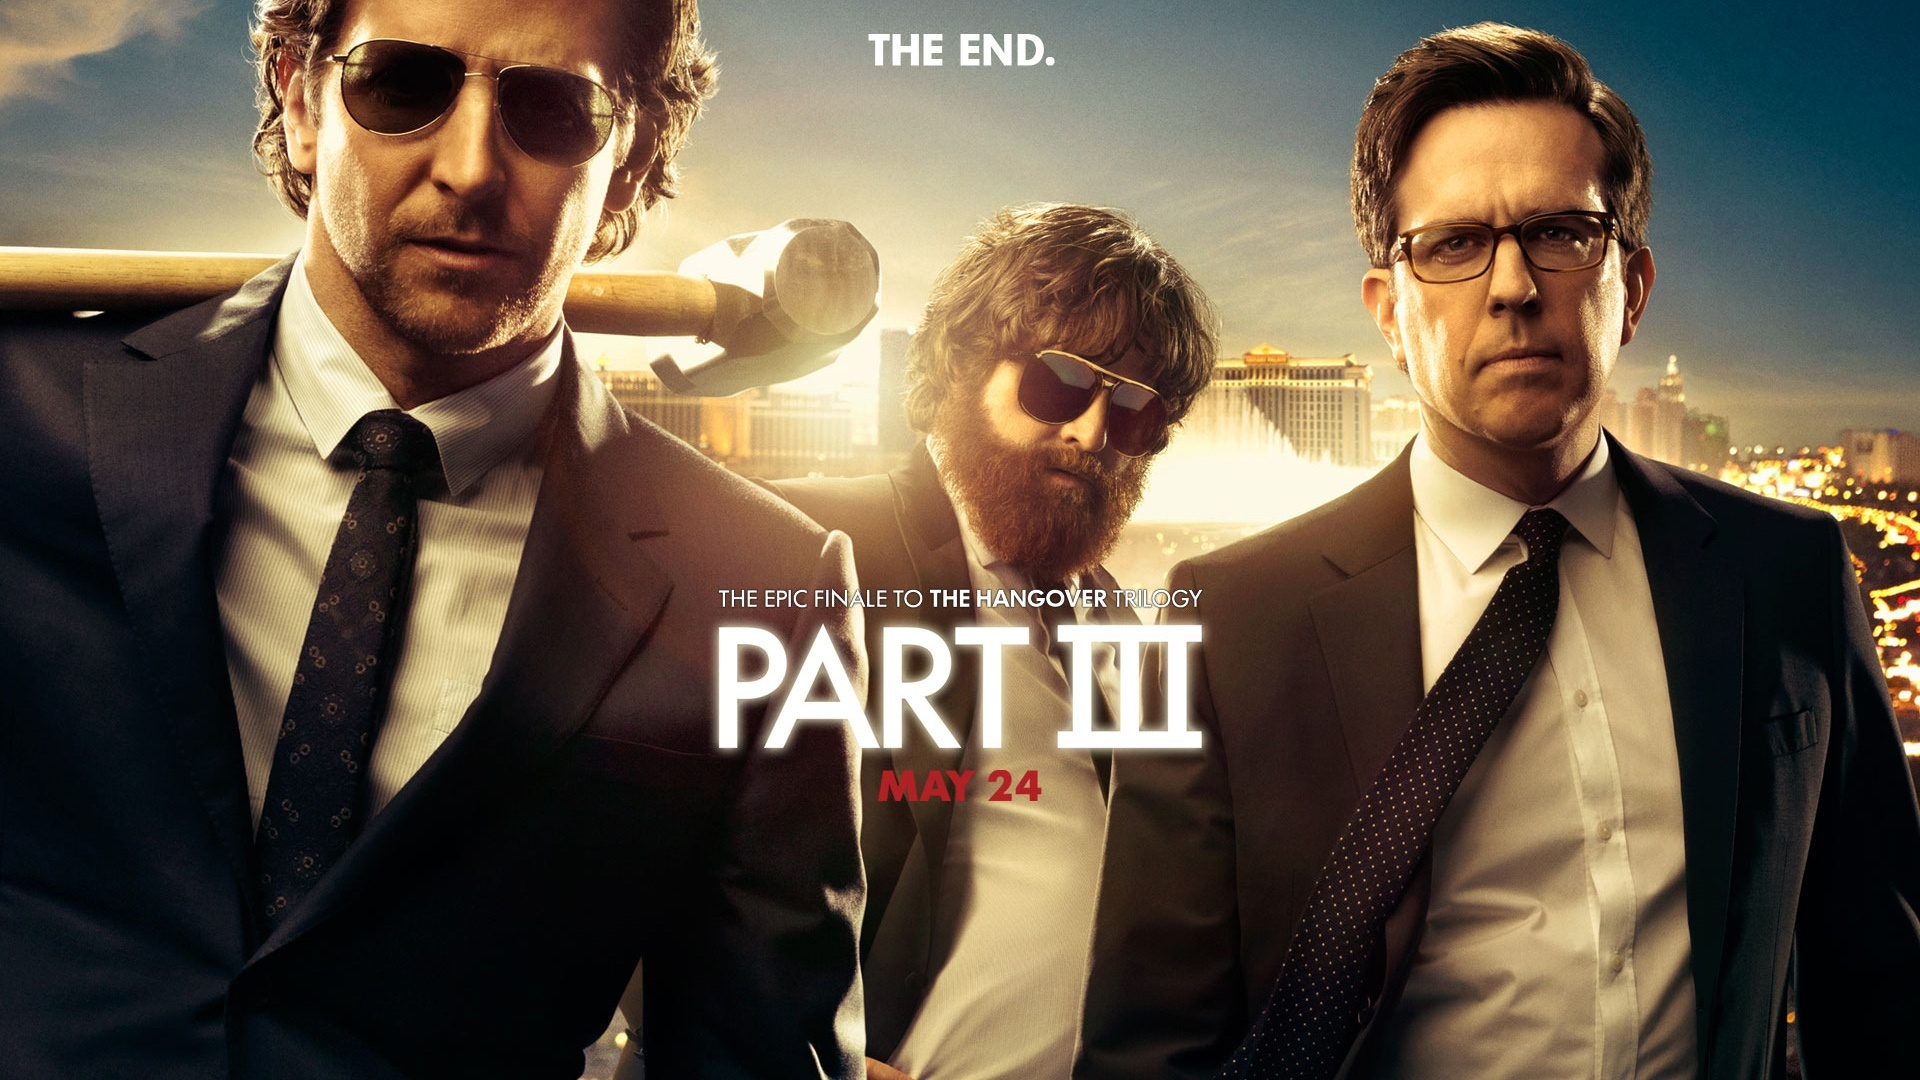 the hangover part 3 movie wallpapers - 1920x1080 - 636252